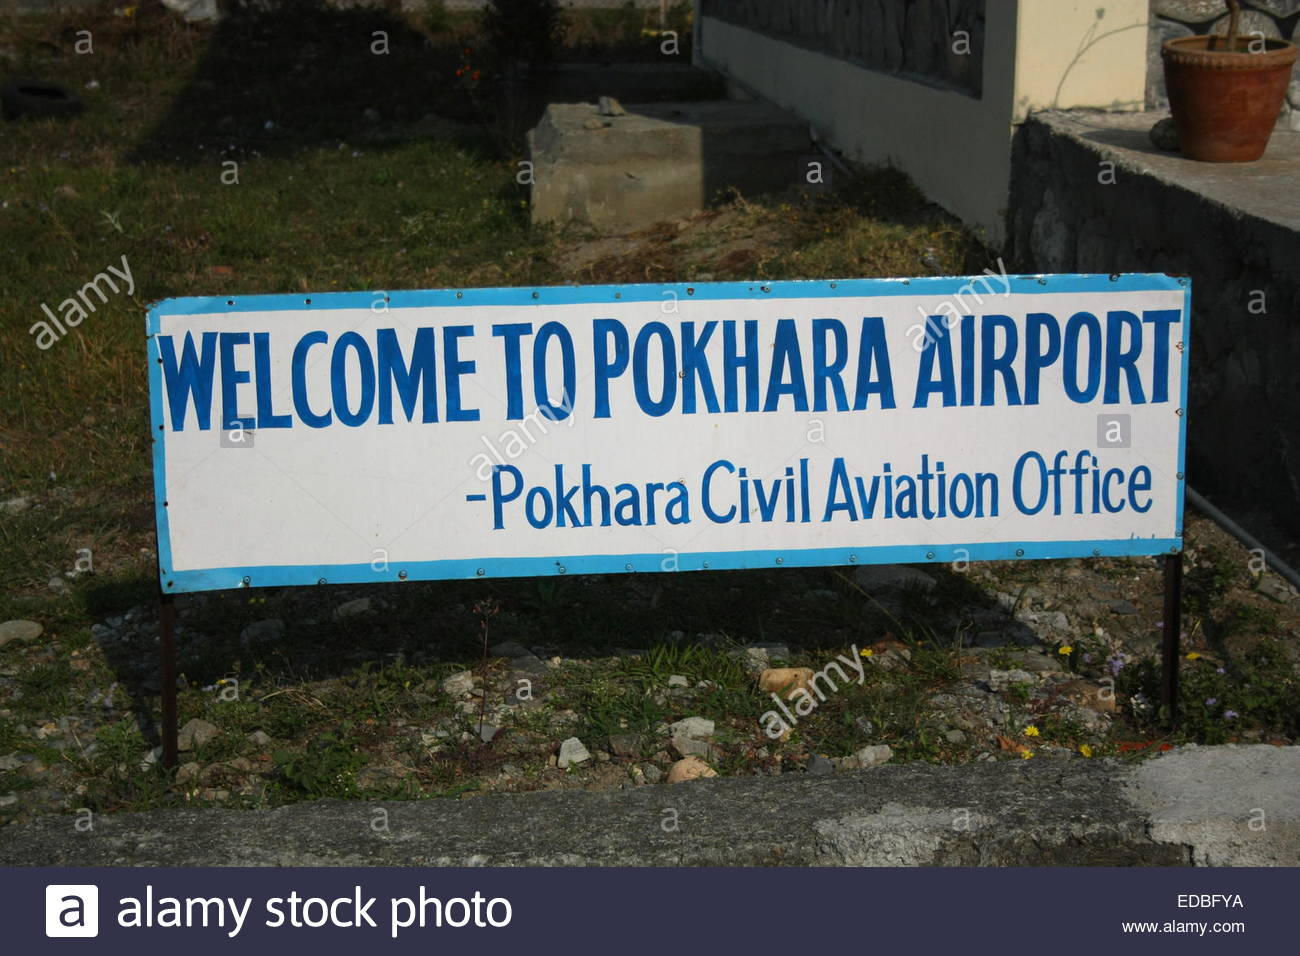 WELCOME TO POKHARA AIRPORT - Pokhara Civil Aviation Office - Stock Image